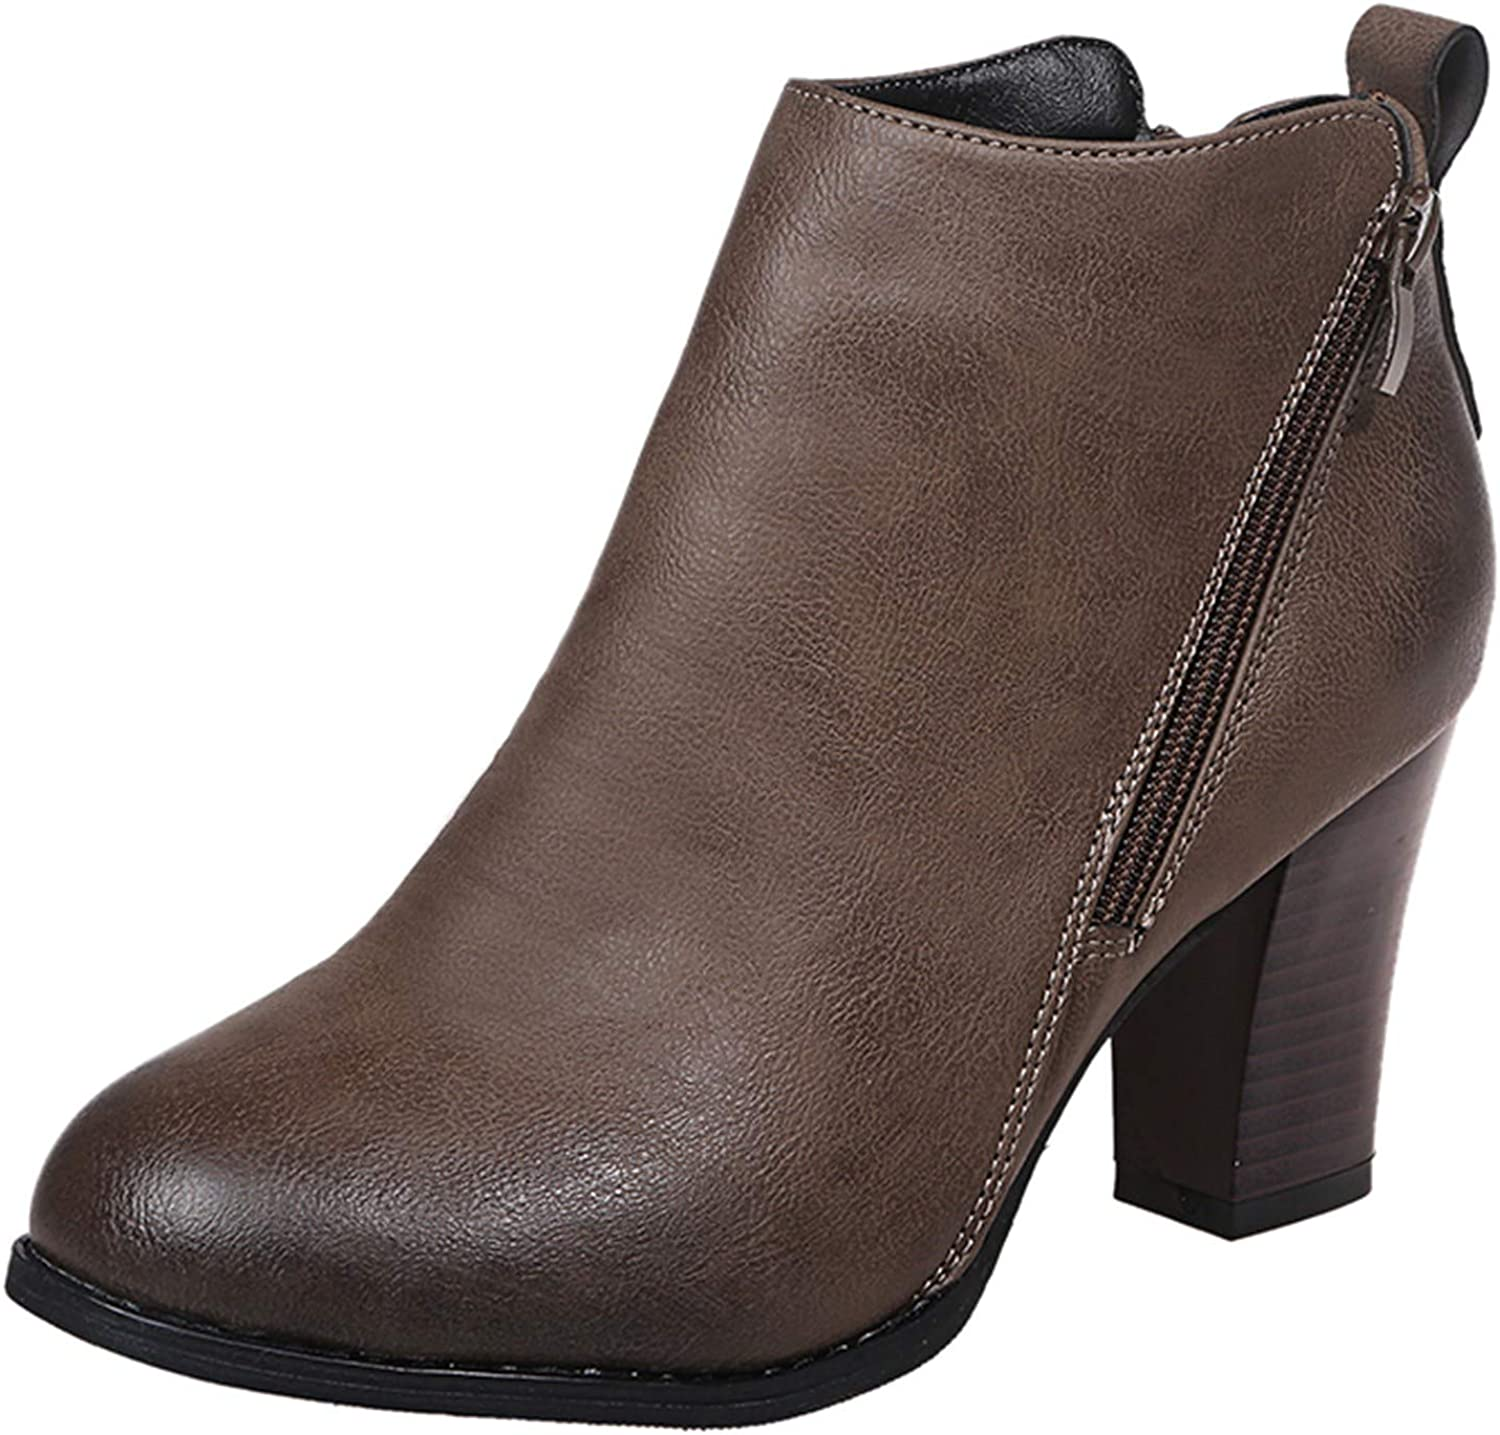 Women Mesa Mall Leather Ankle Booties Slip-On Chunky Retro Bargain sale Stacked Loafers